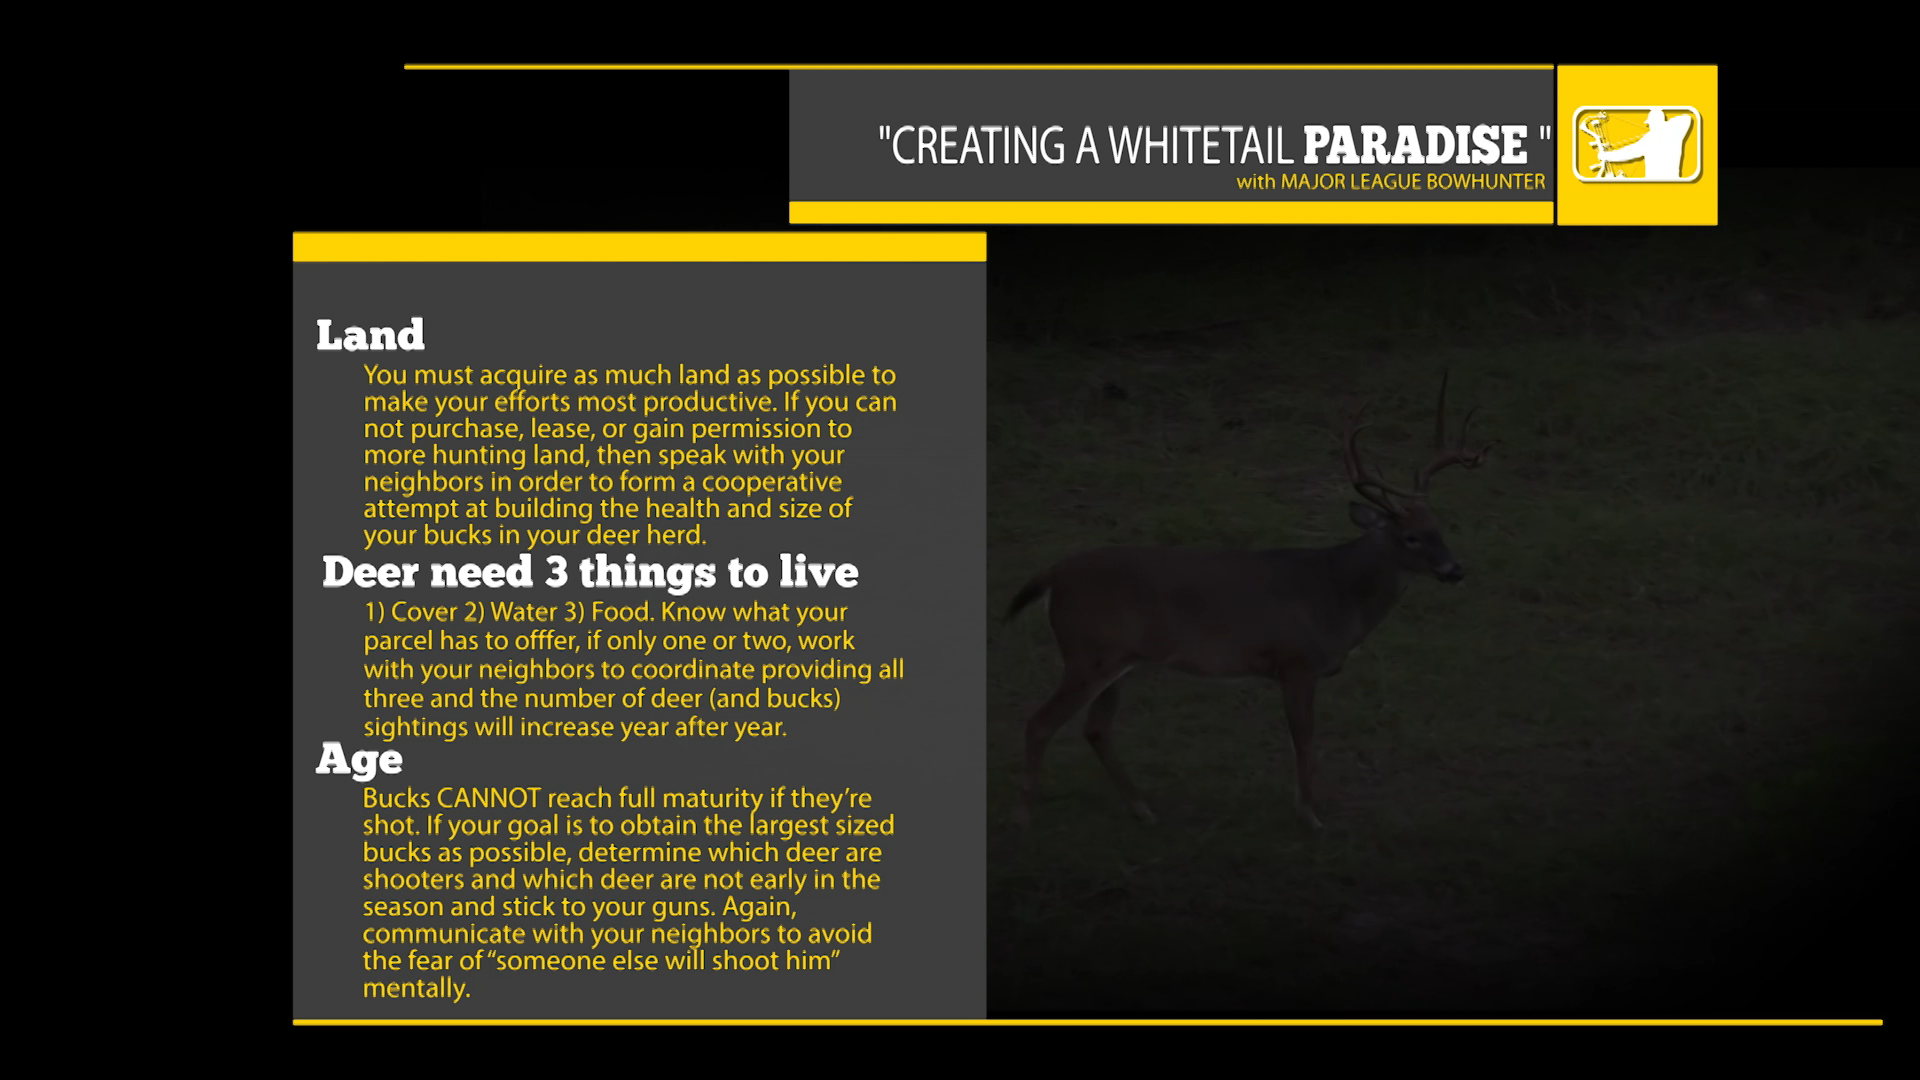 CREATING WHITETAIL PARADISE